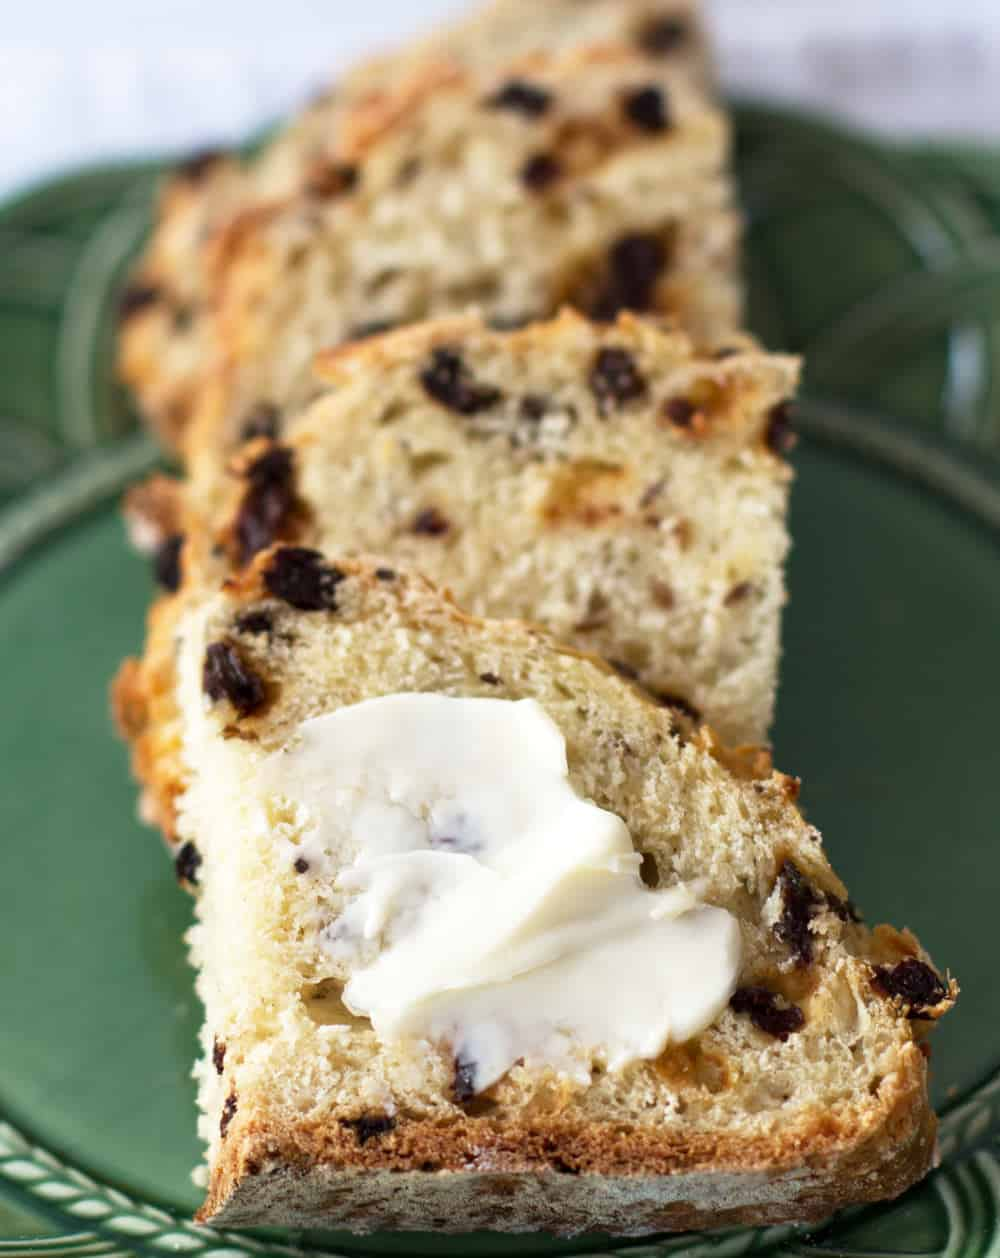 Irish-American soda bread from Sister Mary's recipe. Adapted by Mother Would Know